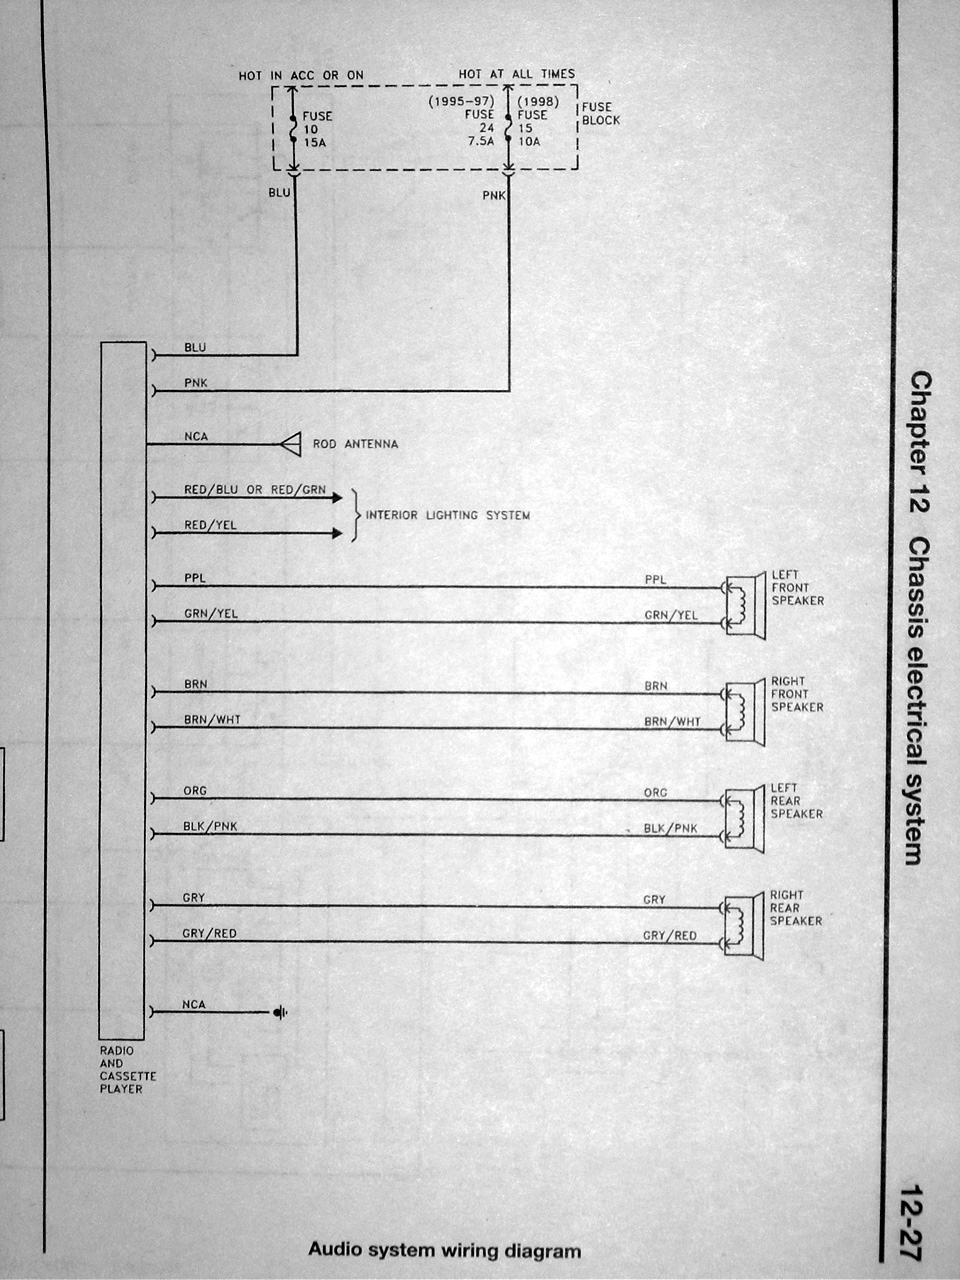 DSC01849 wiring diagram thread *useful info* nissan forum 2002 nissan frontier stereo wiring diagram at bayanpartner.co